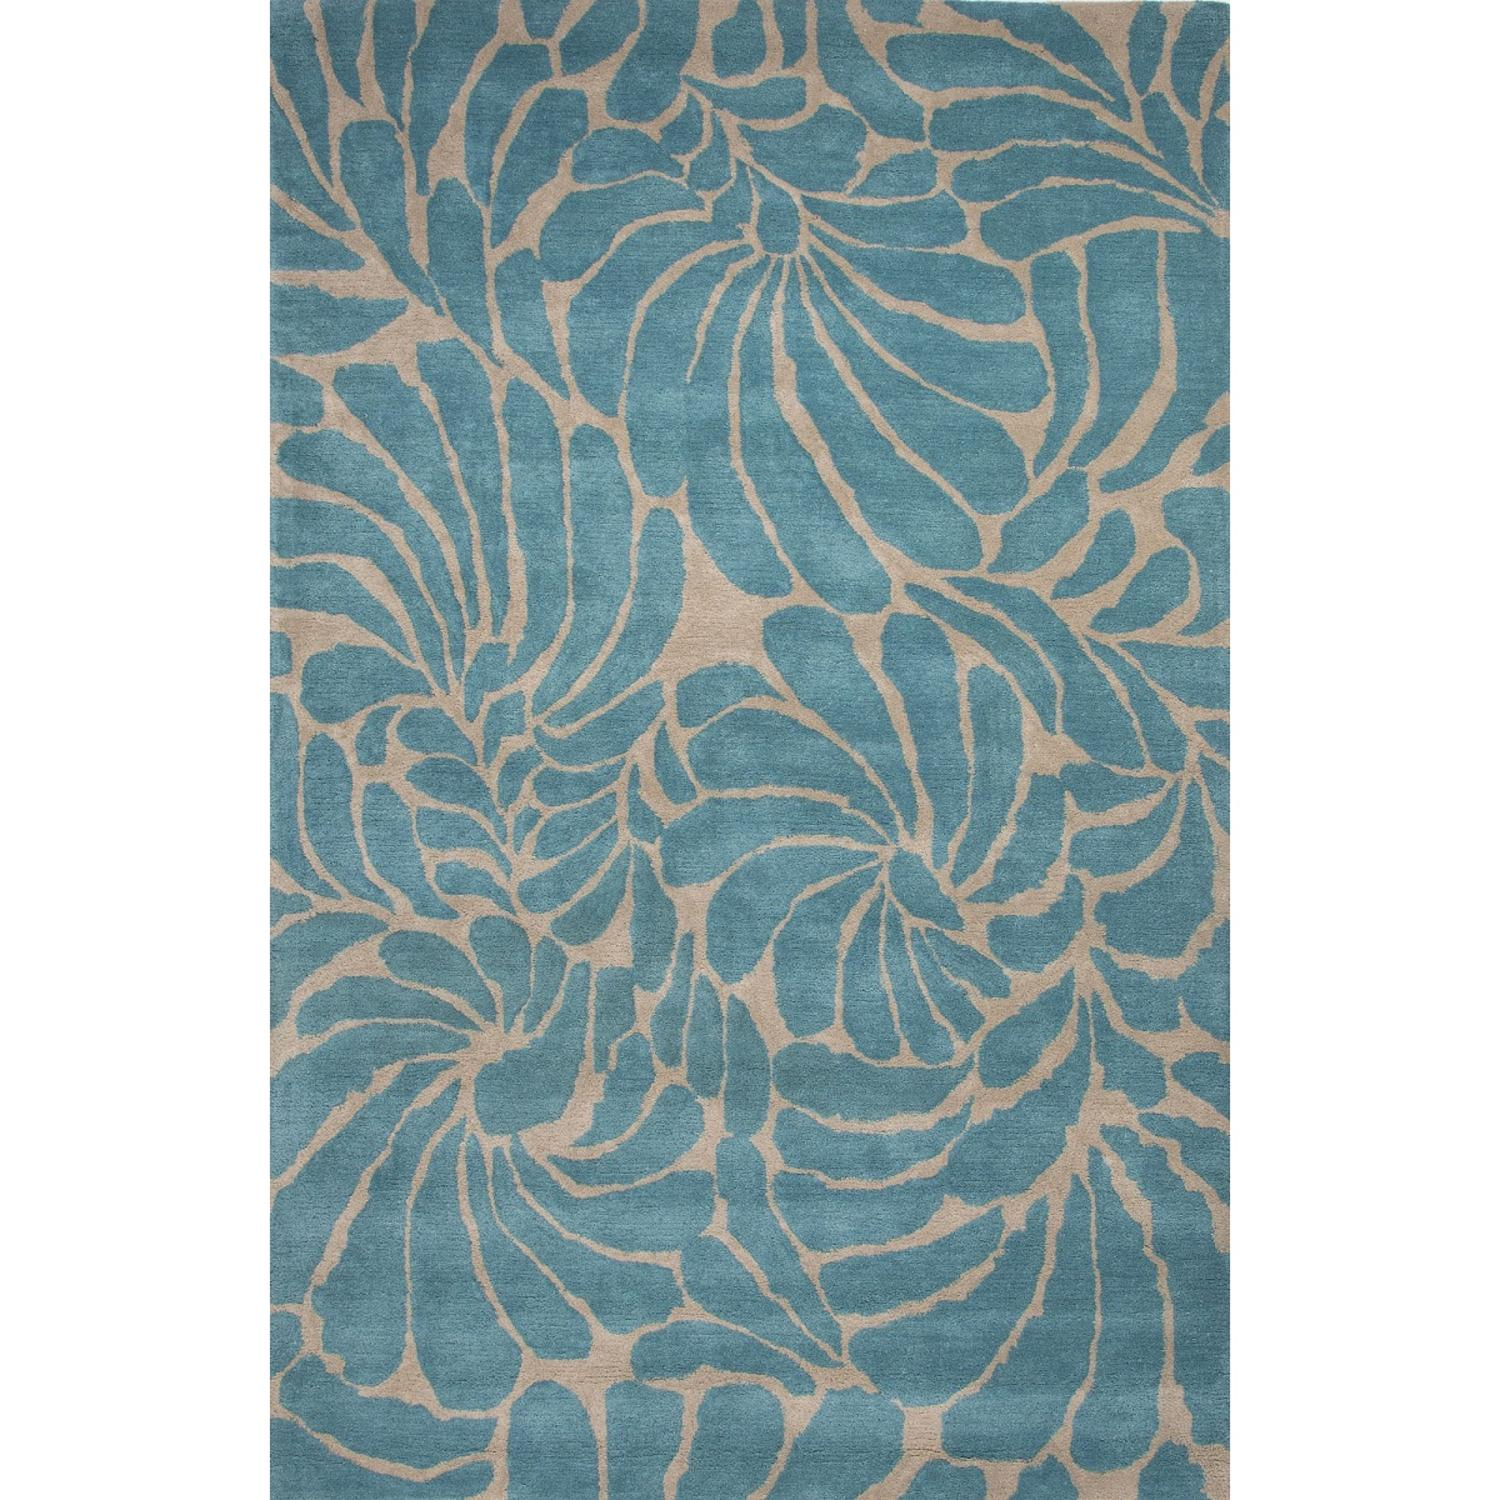 2' x 3' Aqua Crest and Sandstone Swirls New-fashioned Floral Hand Tufted Wool Area Throw Rug